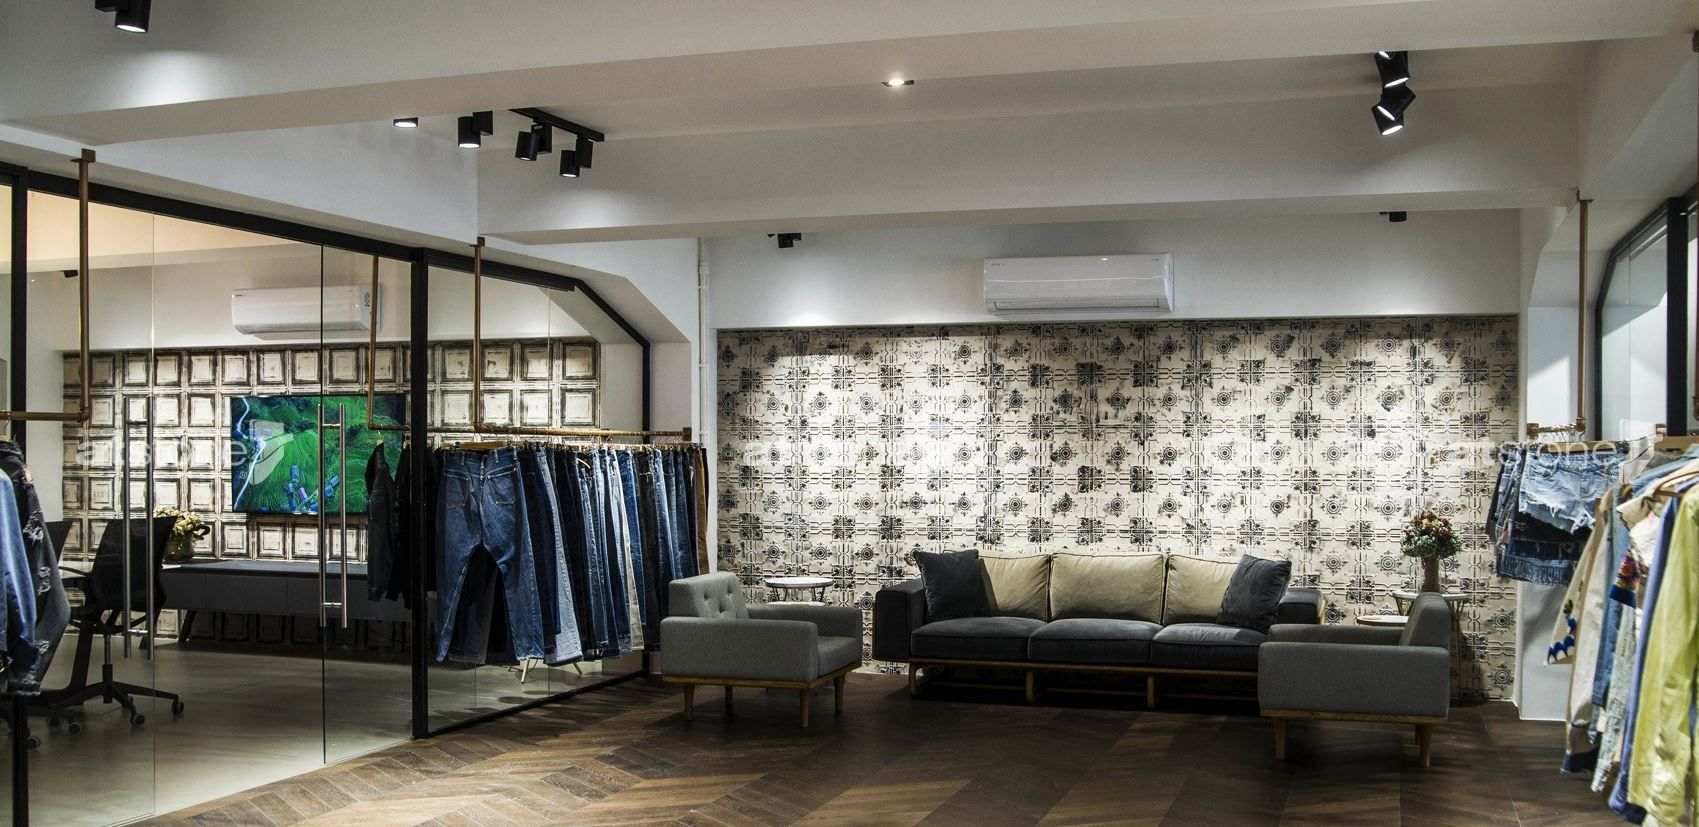 Baykan Fashion These walls and ceilings, which carry the